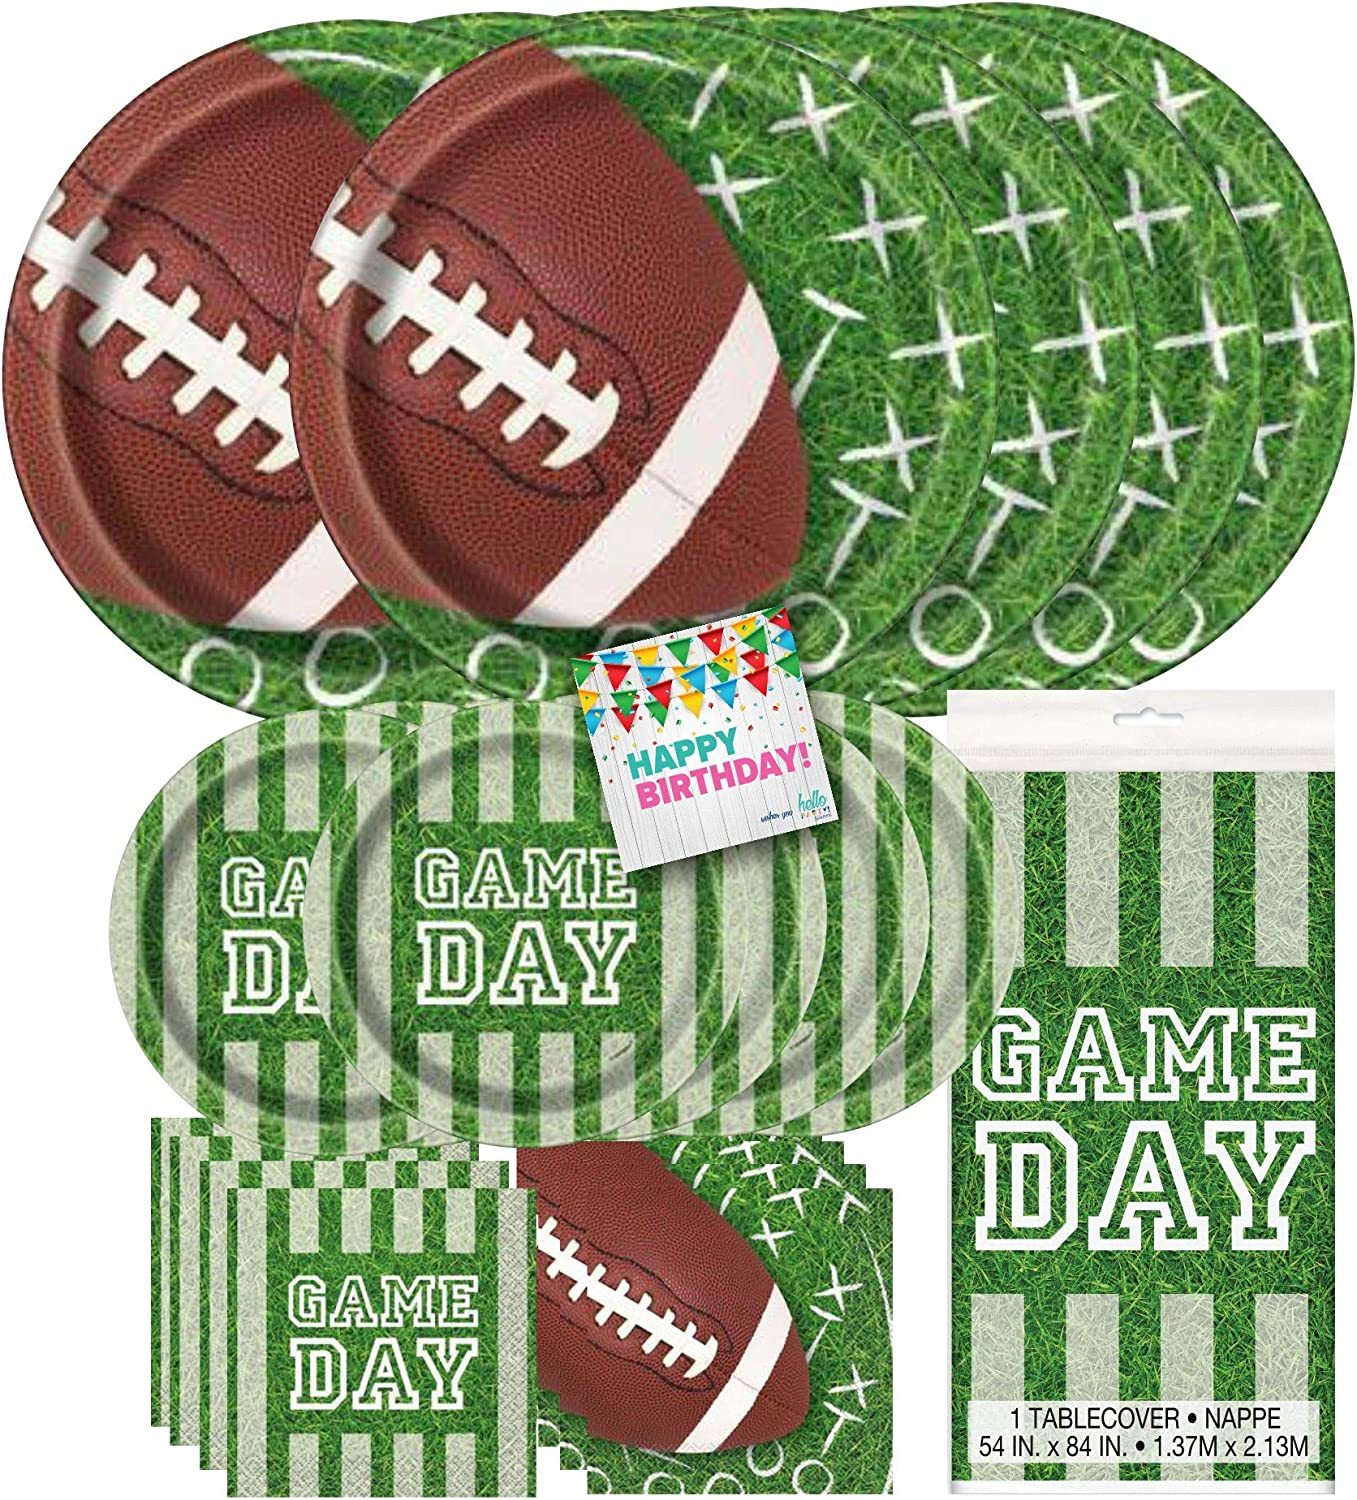 Hello Party! Football Dinnerware Bundle Party Pack Supplies - 16 Luncheon Napkins, 16 Beverage Napkins, 8 Dinner Plates, 8 Dessert Plates, Tableware, for Kid's Birthday Party, Cartoon Themed Event